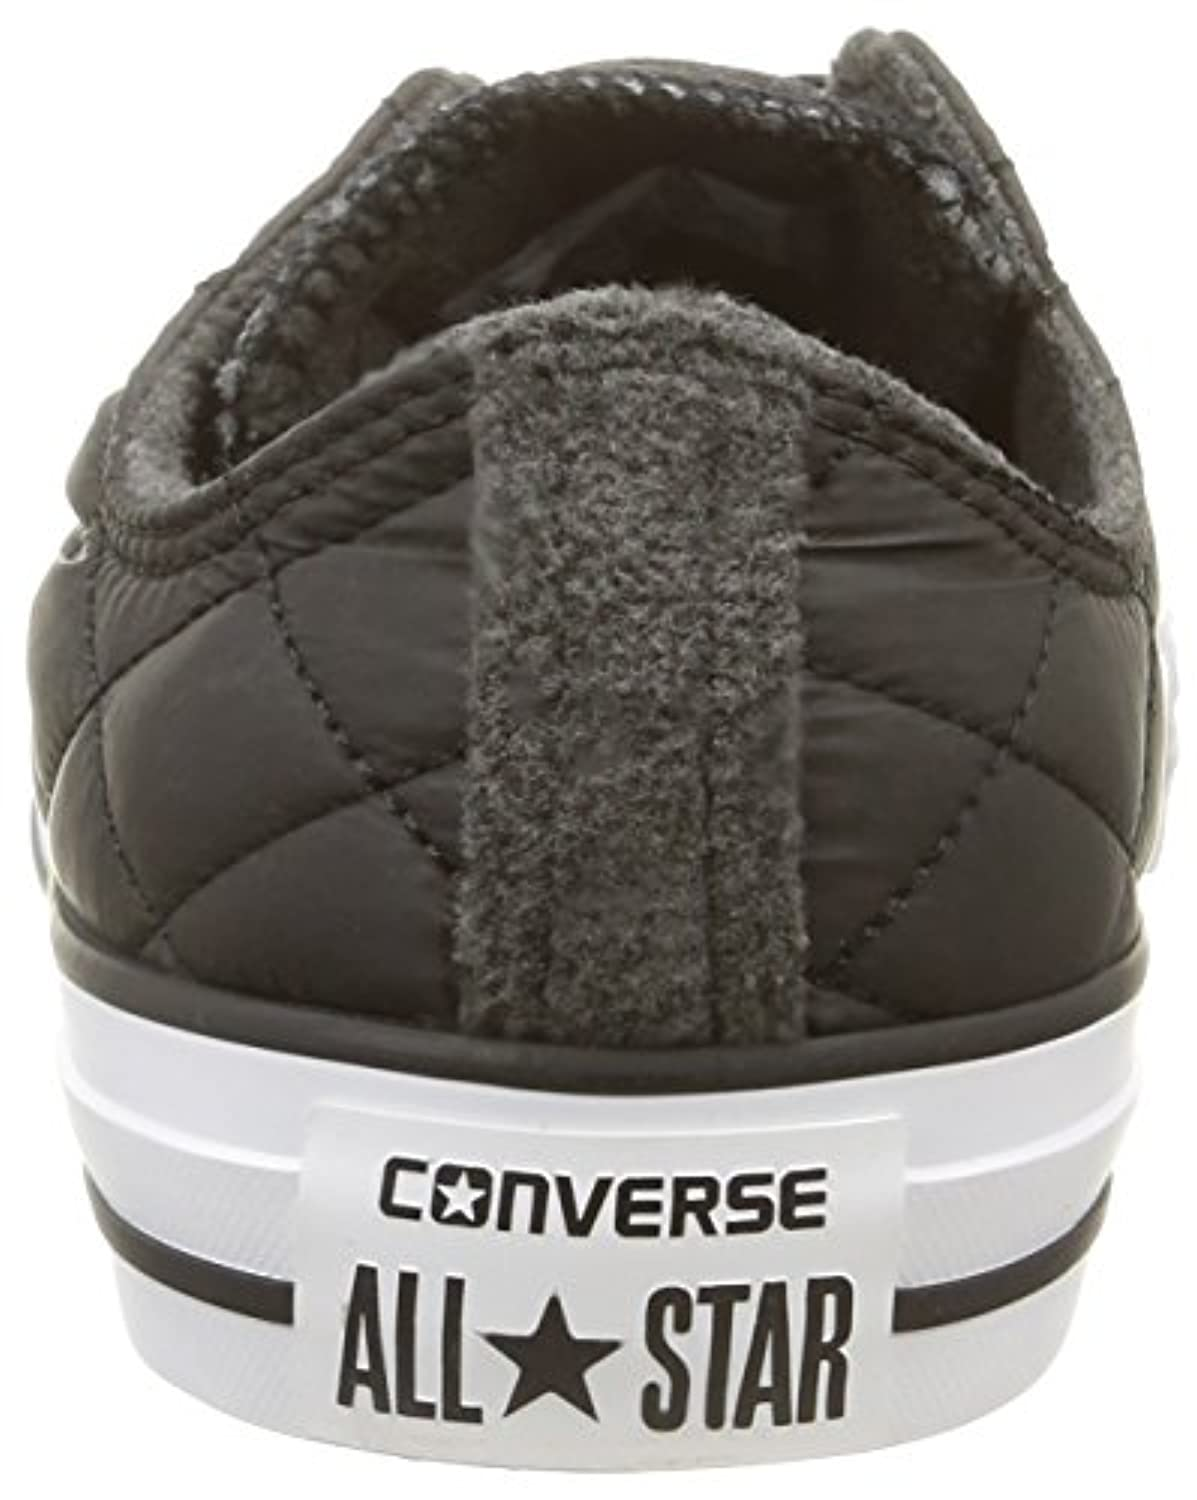 lrg mens p hi star shoes uk shoesminicouk shoesmini converse all black co chuck taylor sneaker quilt quilted